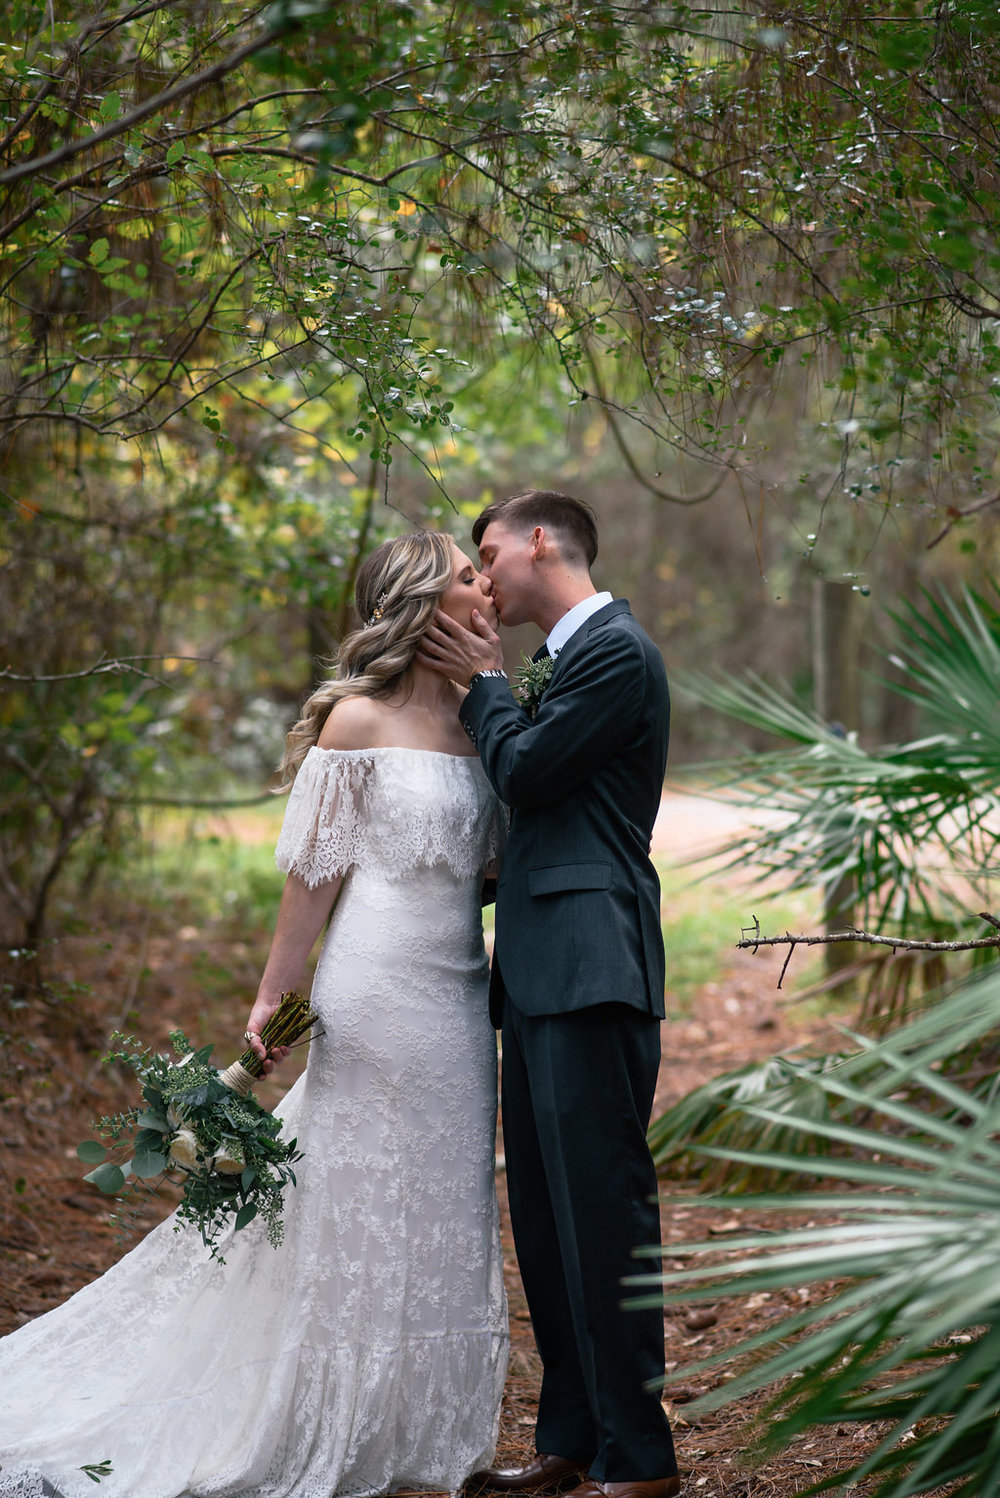 ivory-and-beau-bridal-boutique-meg-hill-photography-laurence-daughters-of-simone-boho-wedding-gown-douglas-ga-wedding-13.jpg